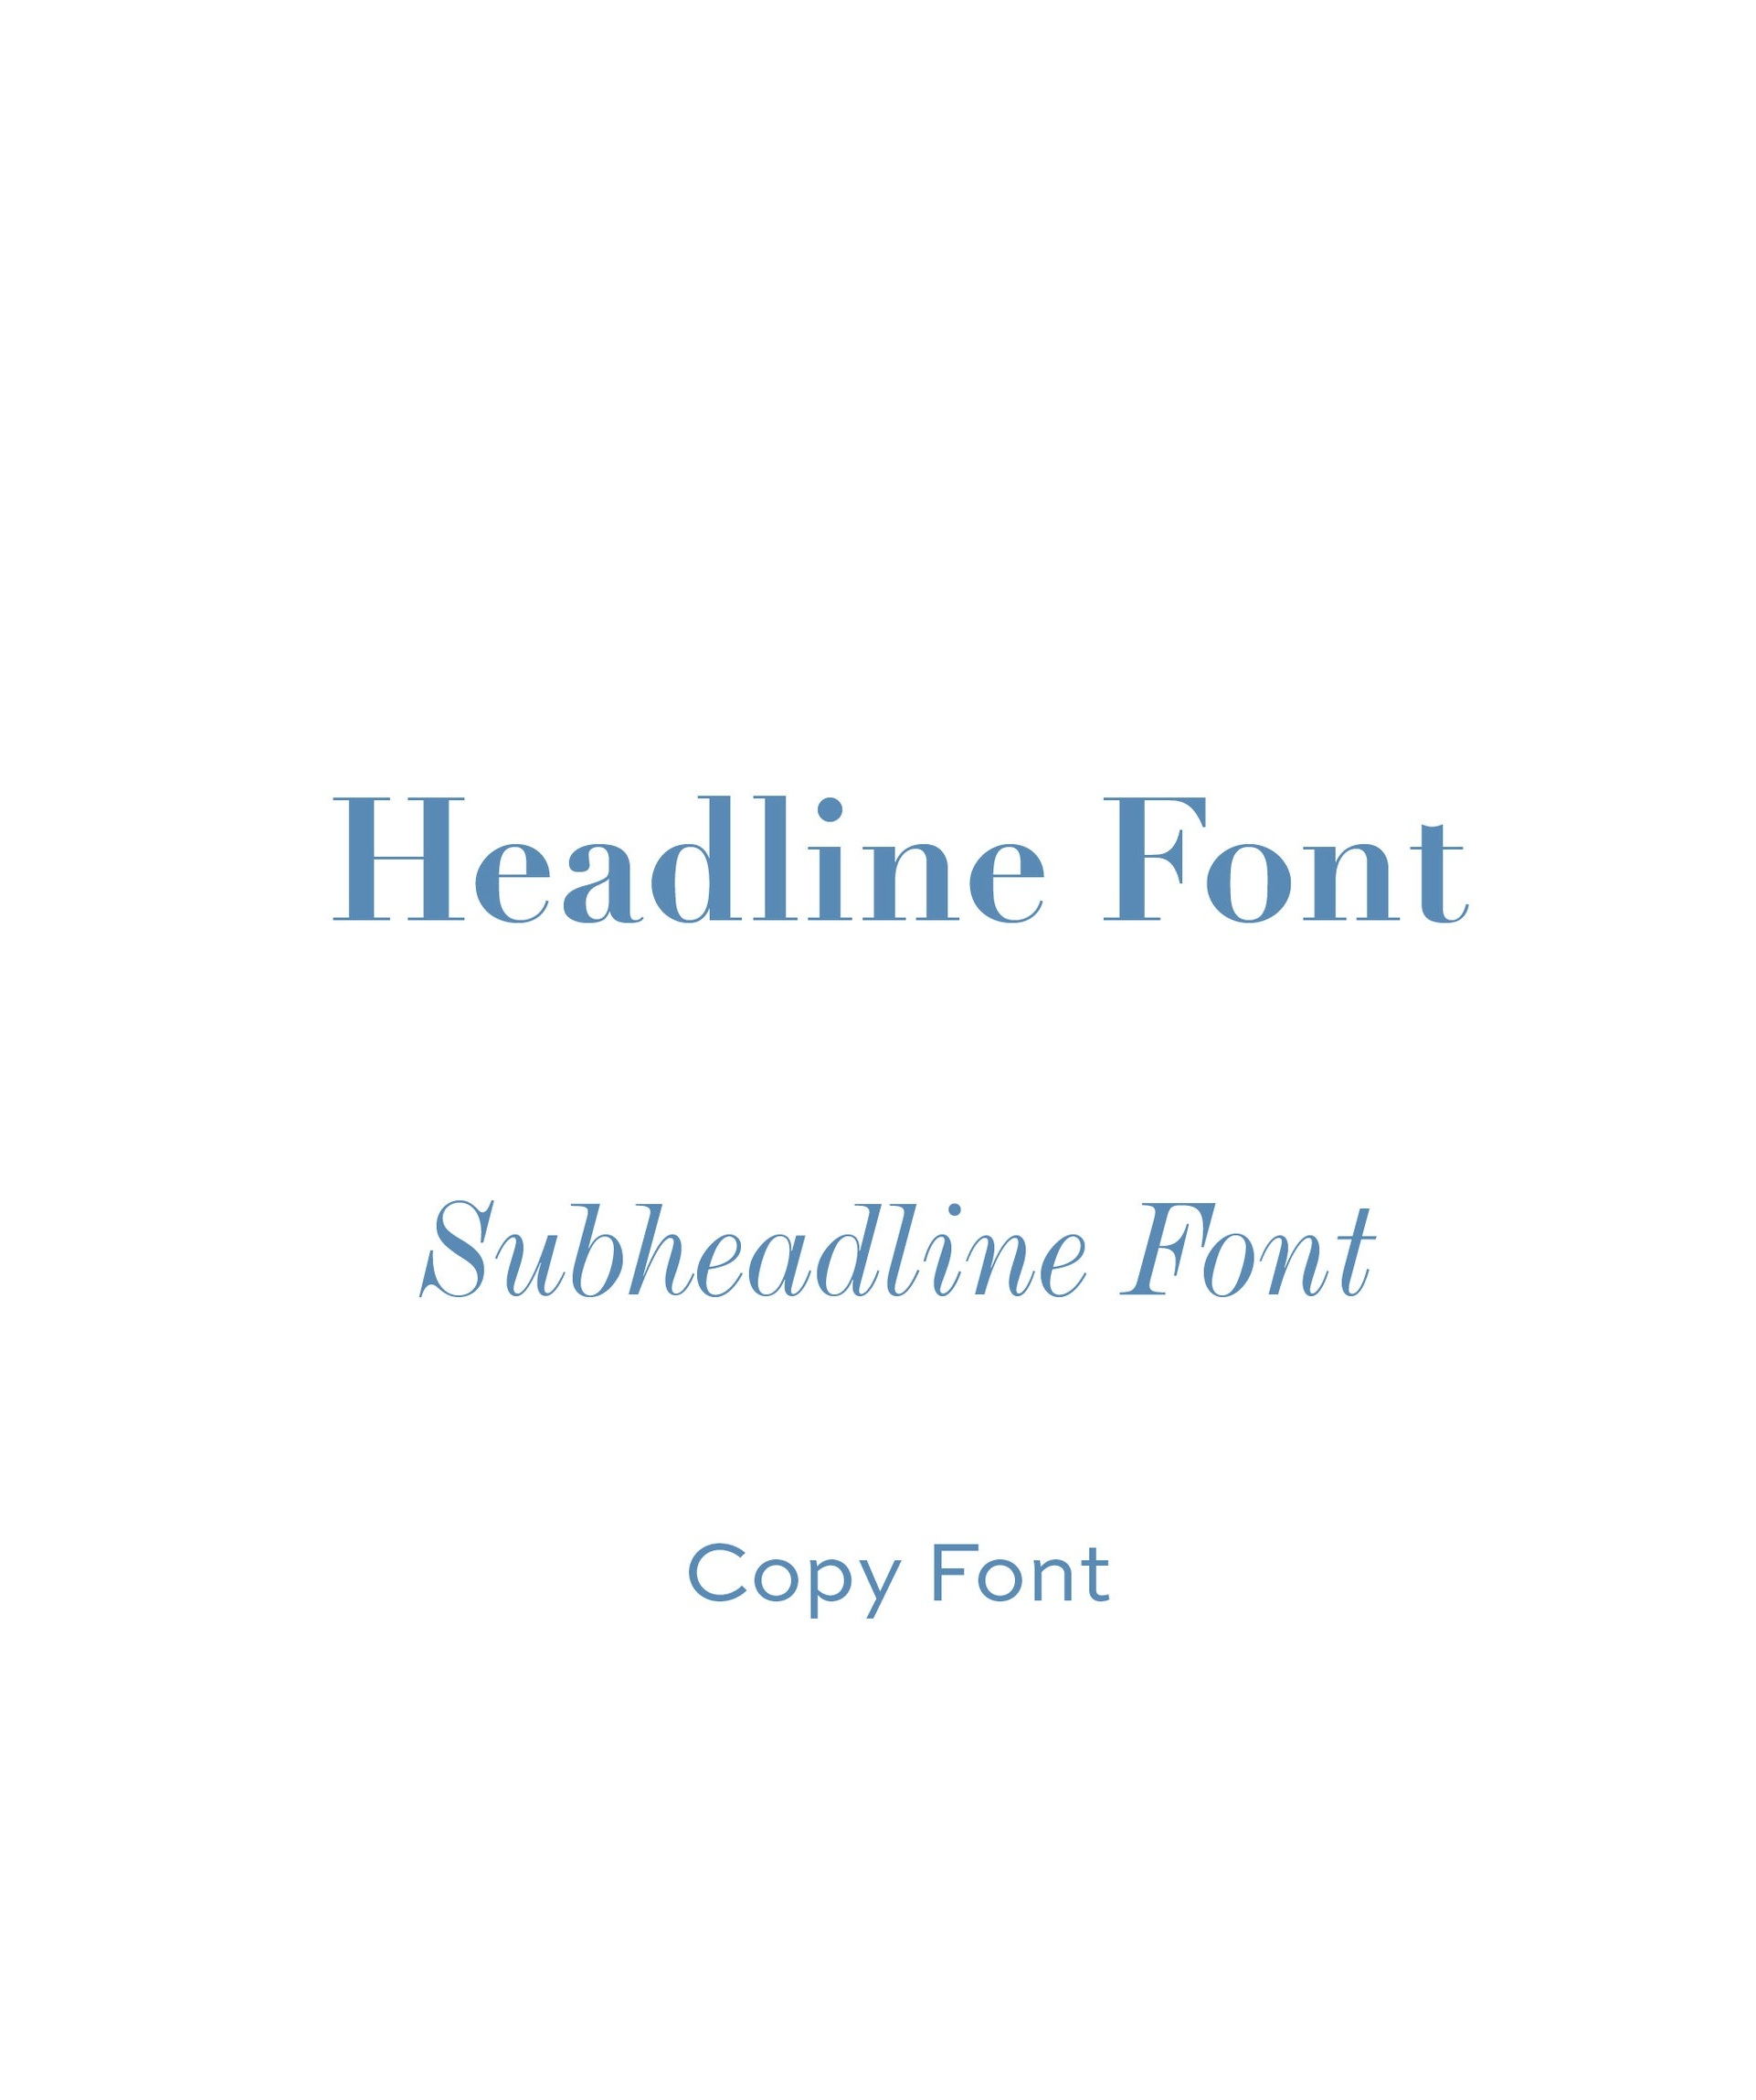 Typography Curation